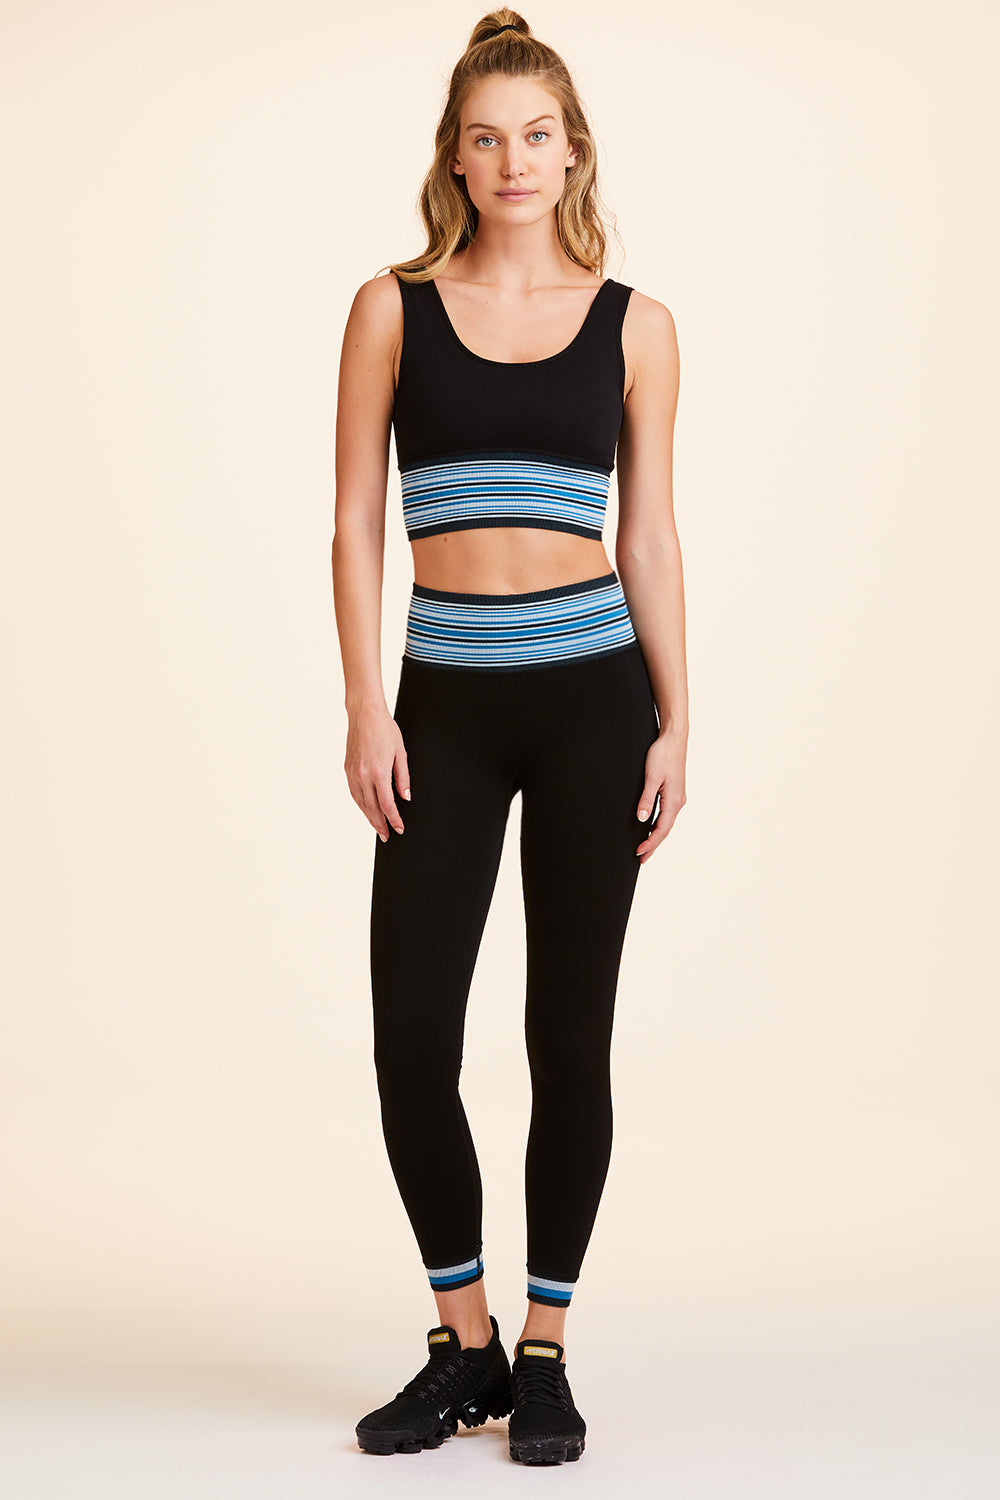 Banded Seamless Tights